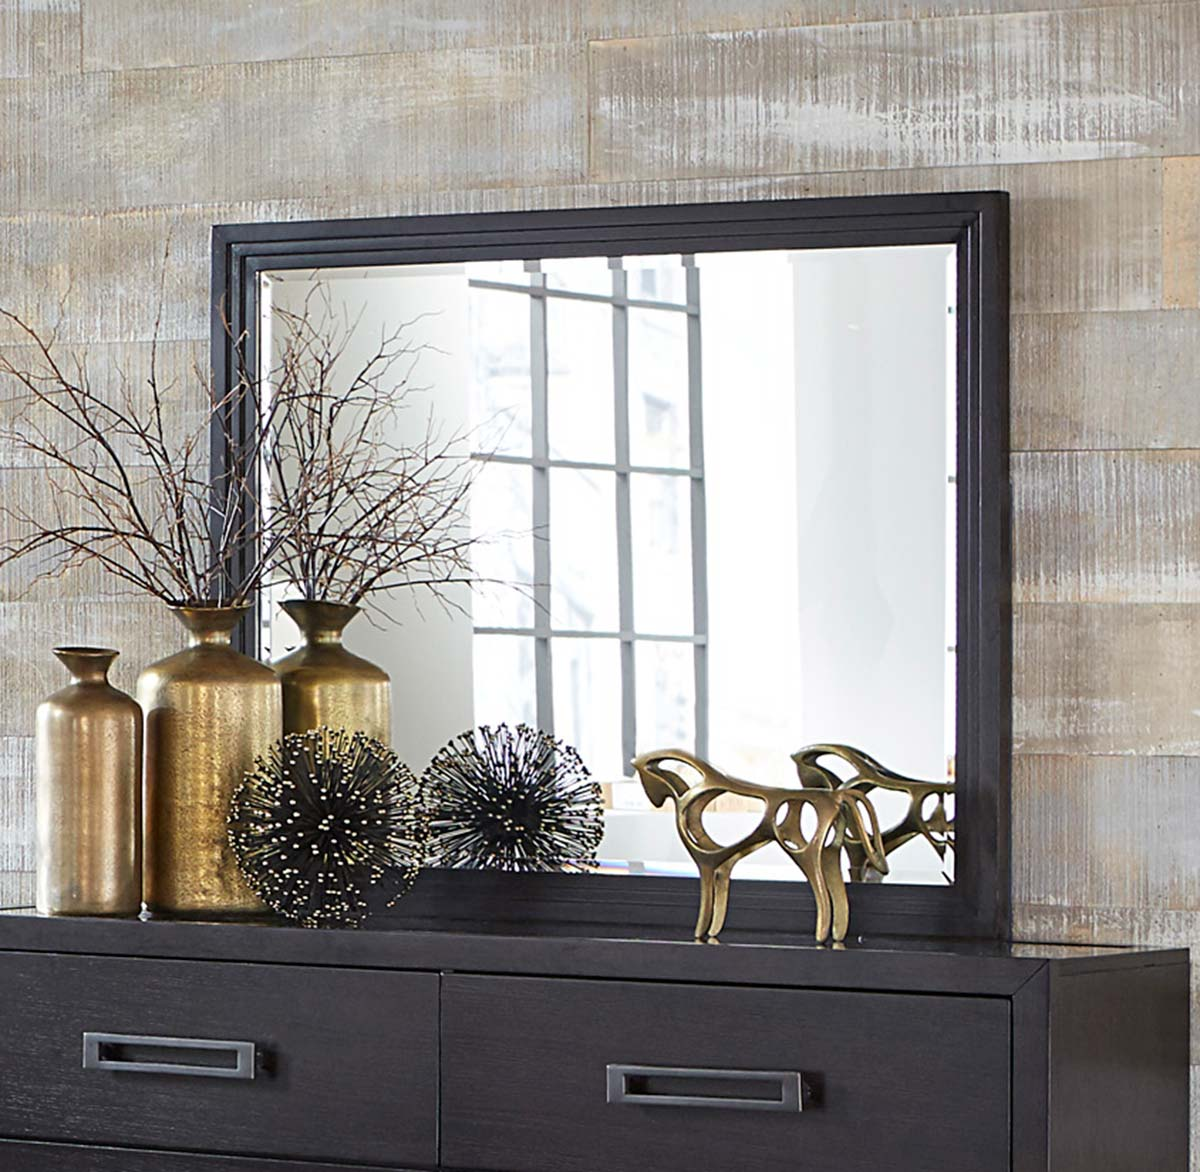 Homelegance Larchmont Mirror - Charcoal Finish over Ash Veneer